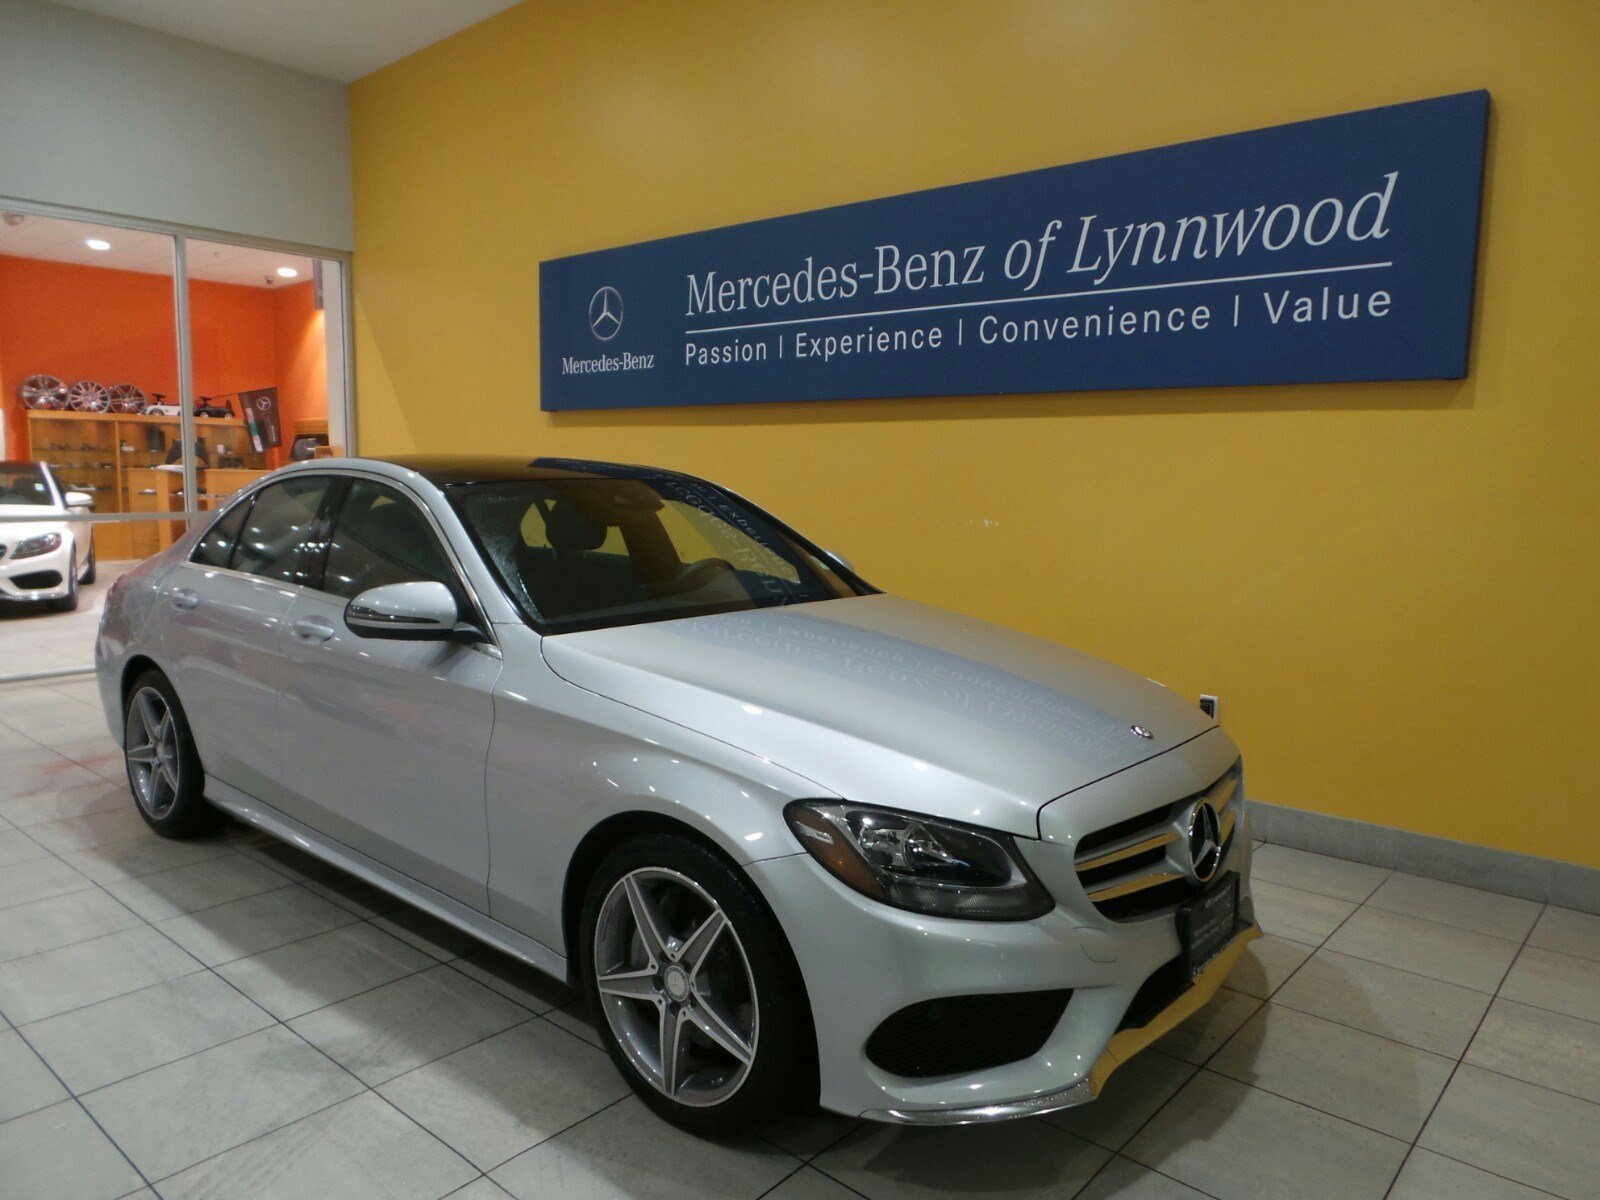 Pre owned 2016 mercedes benz c class c300 sport 4dr car in for Mercedes benz c class pre owned